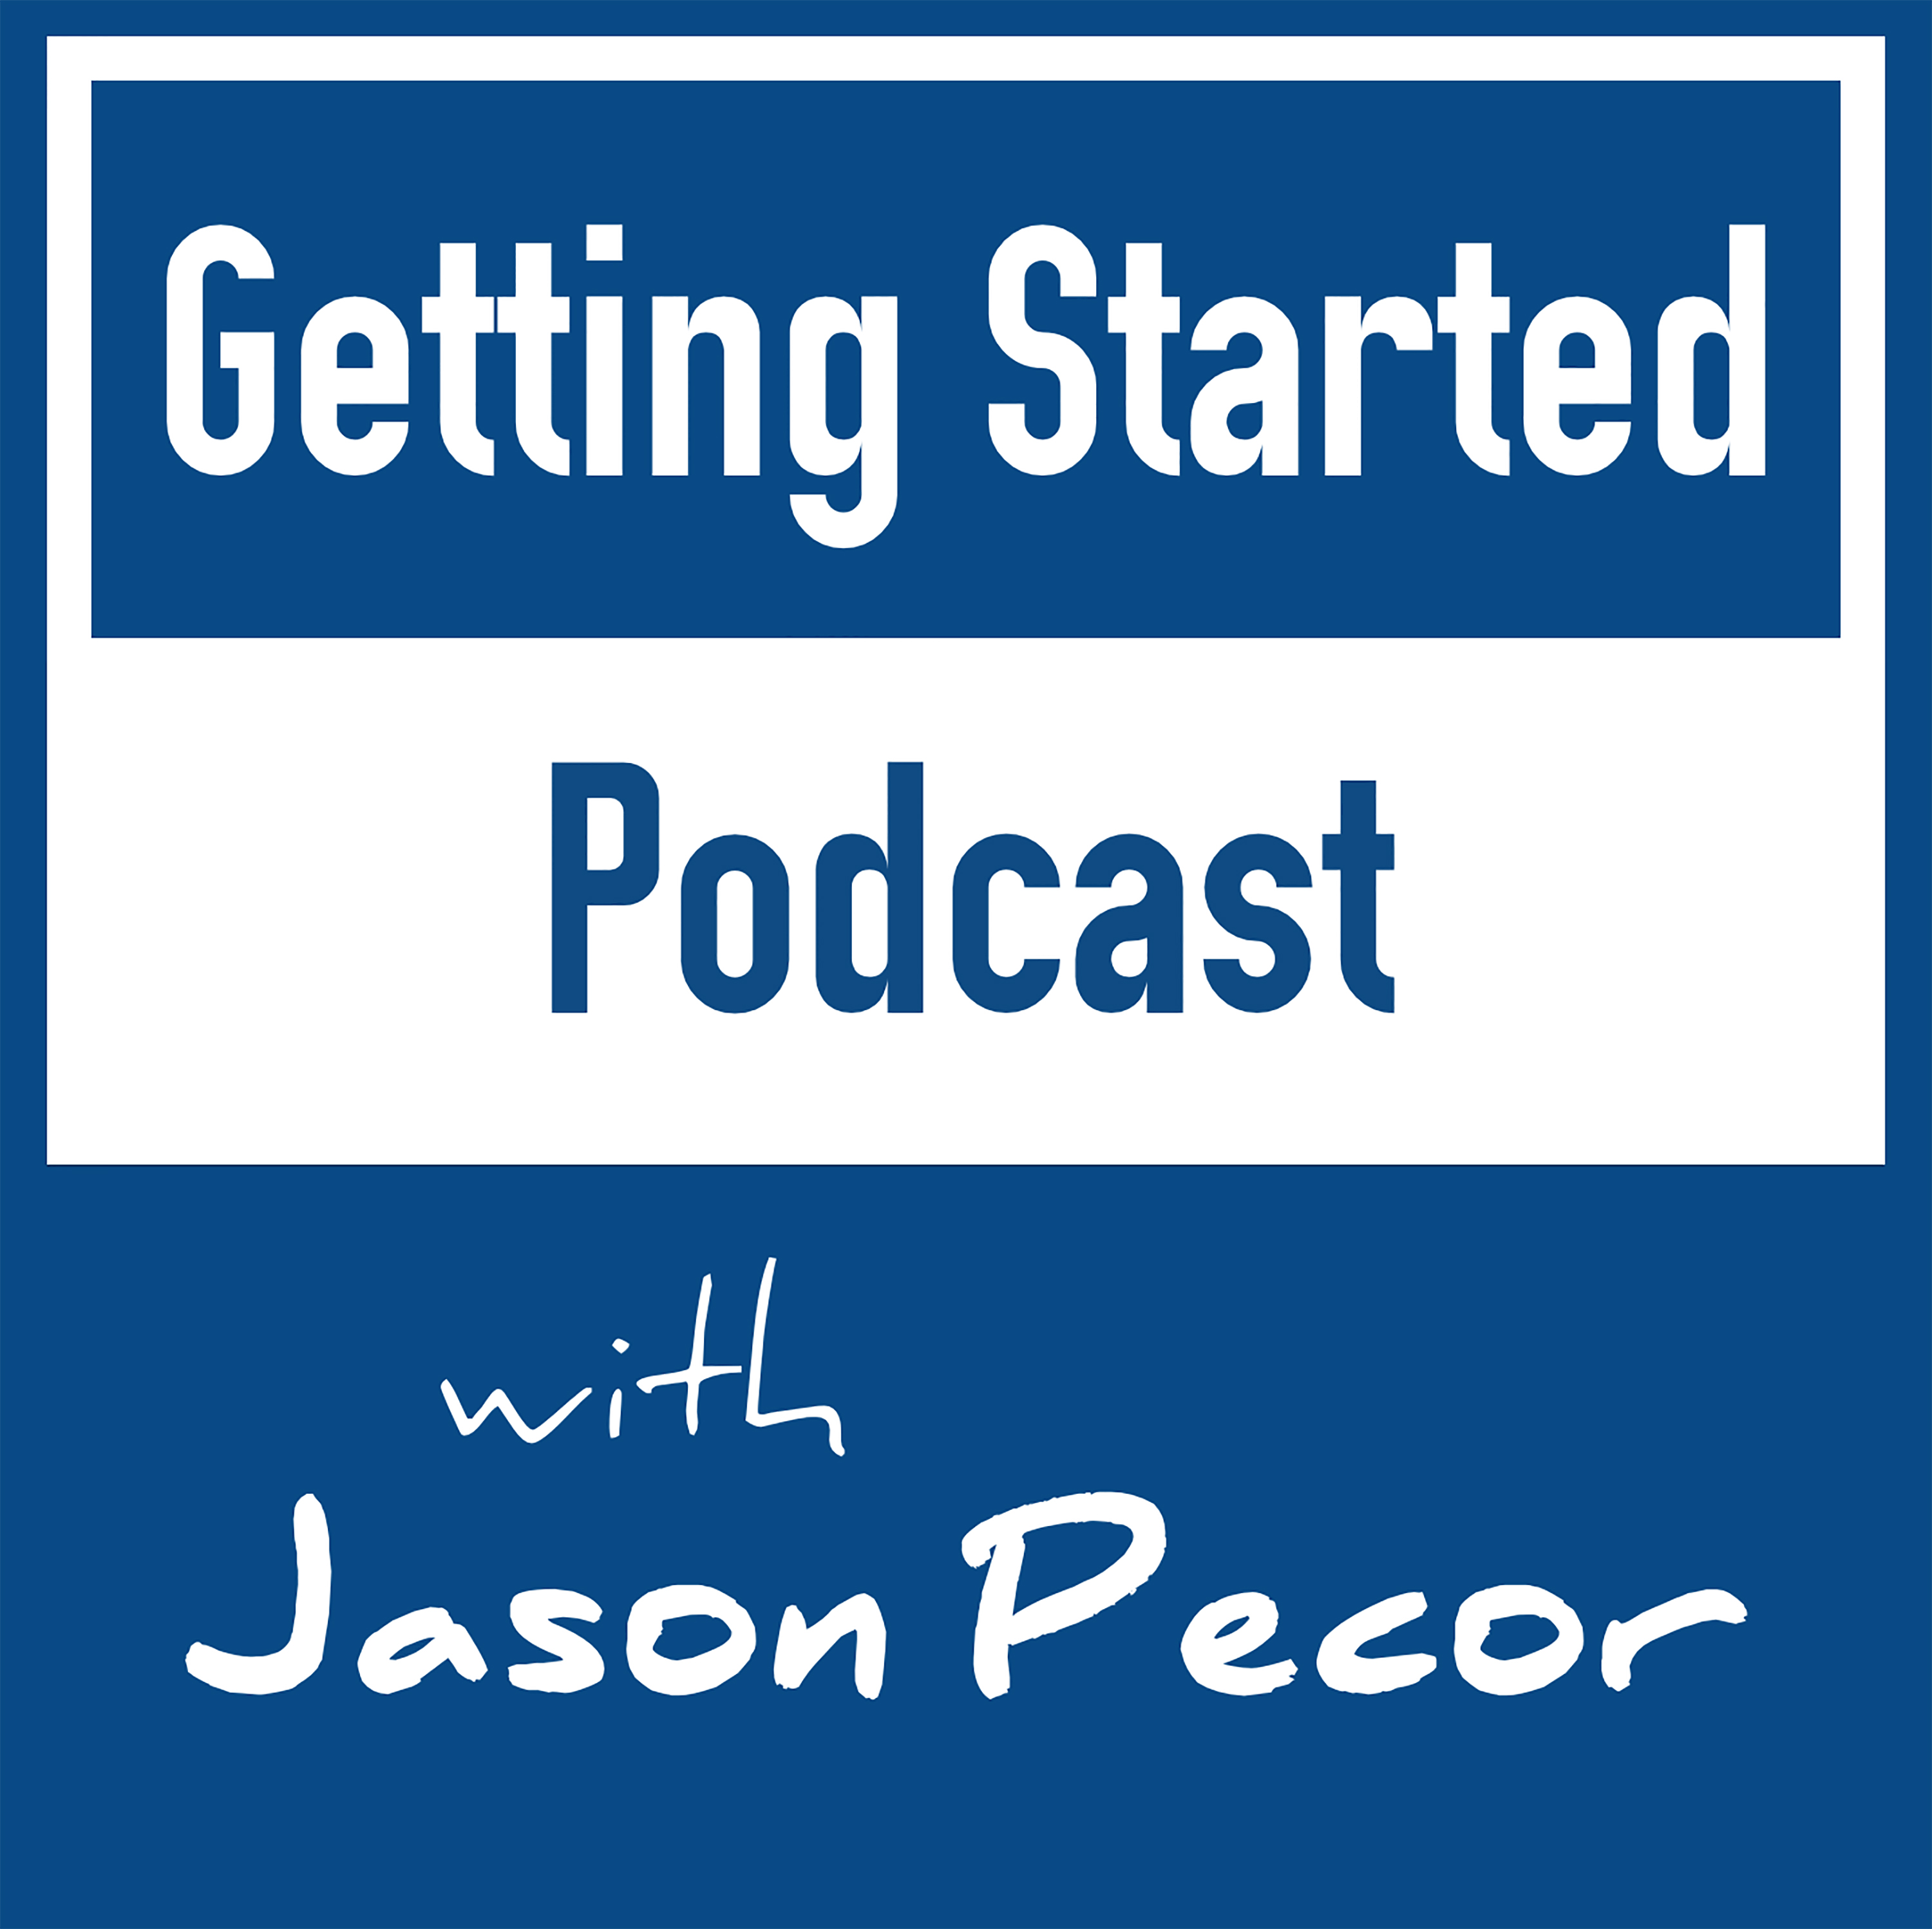 Getting Started Podcast